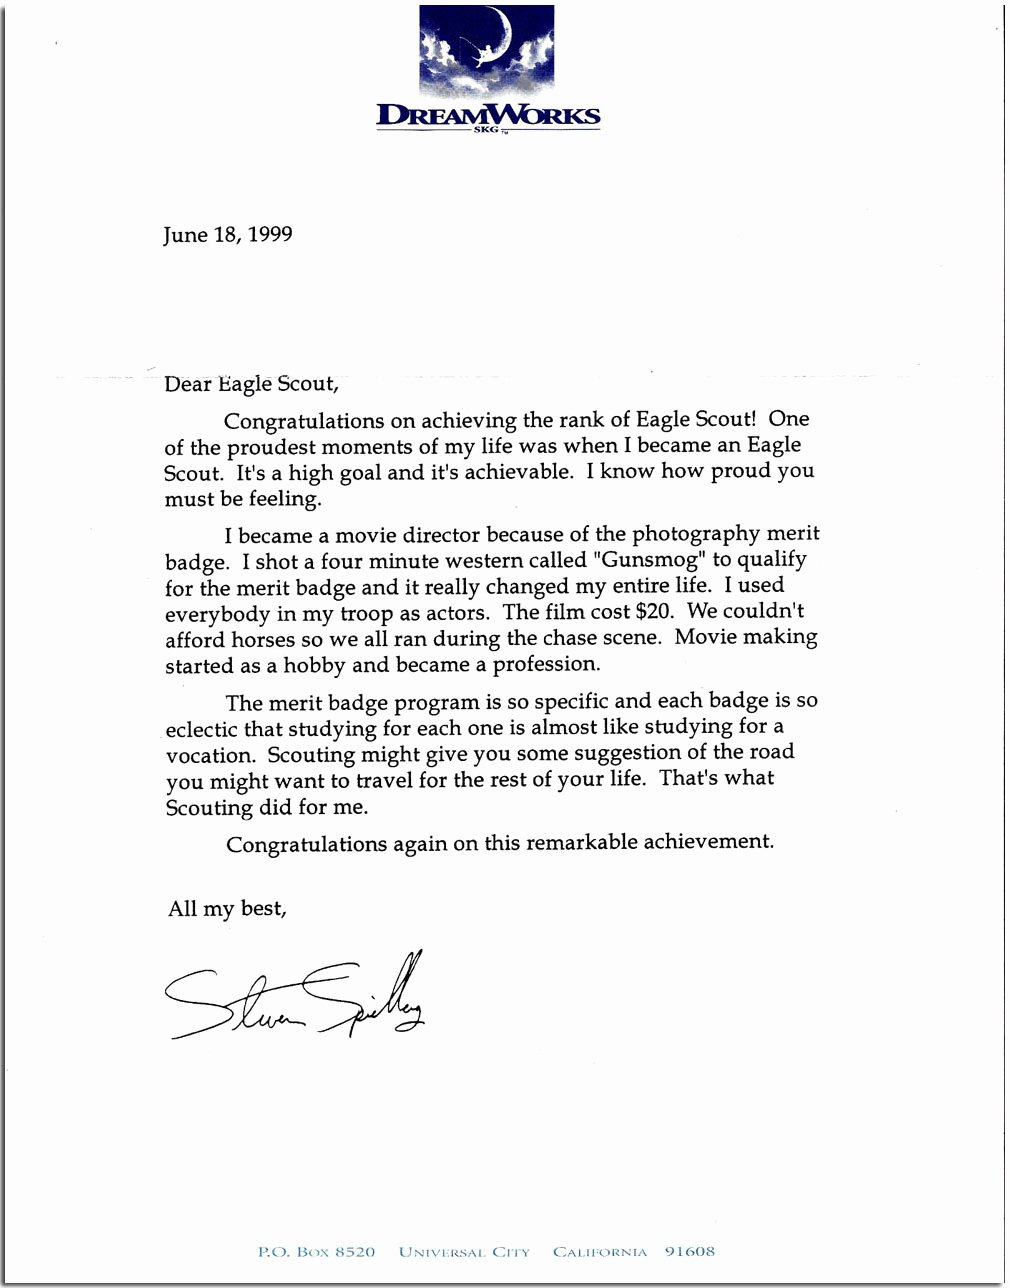 Eagle Scout Recommendation Letter Samples New Check Out 30 Of the Coolest Eagle Scout Letters I've Seen